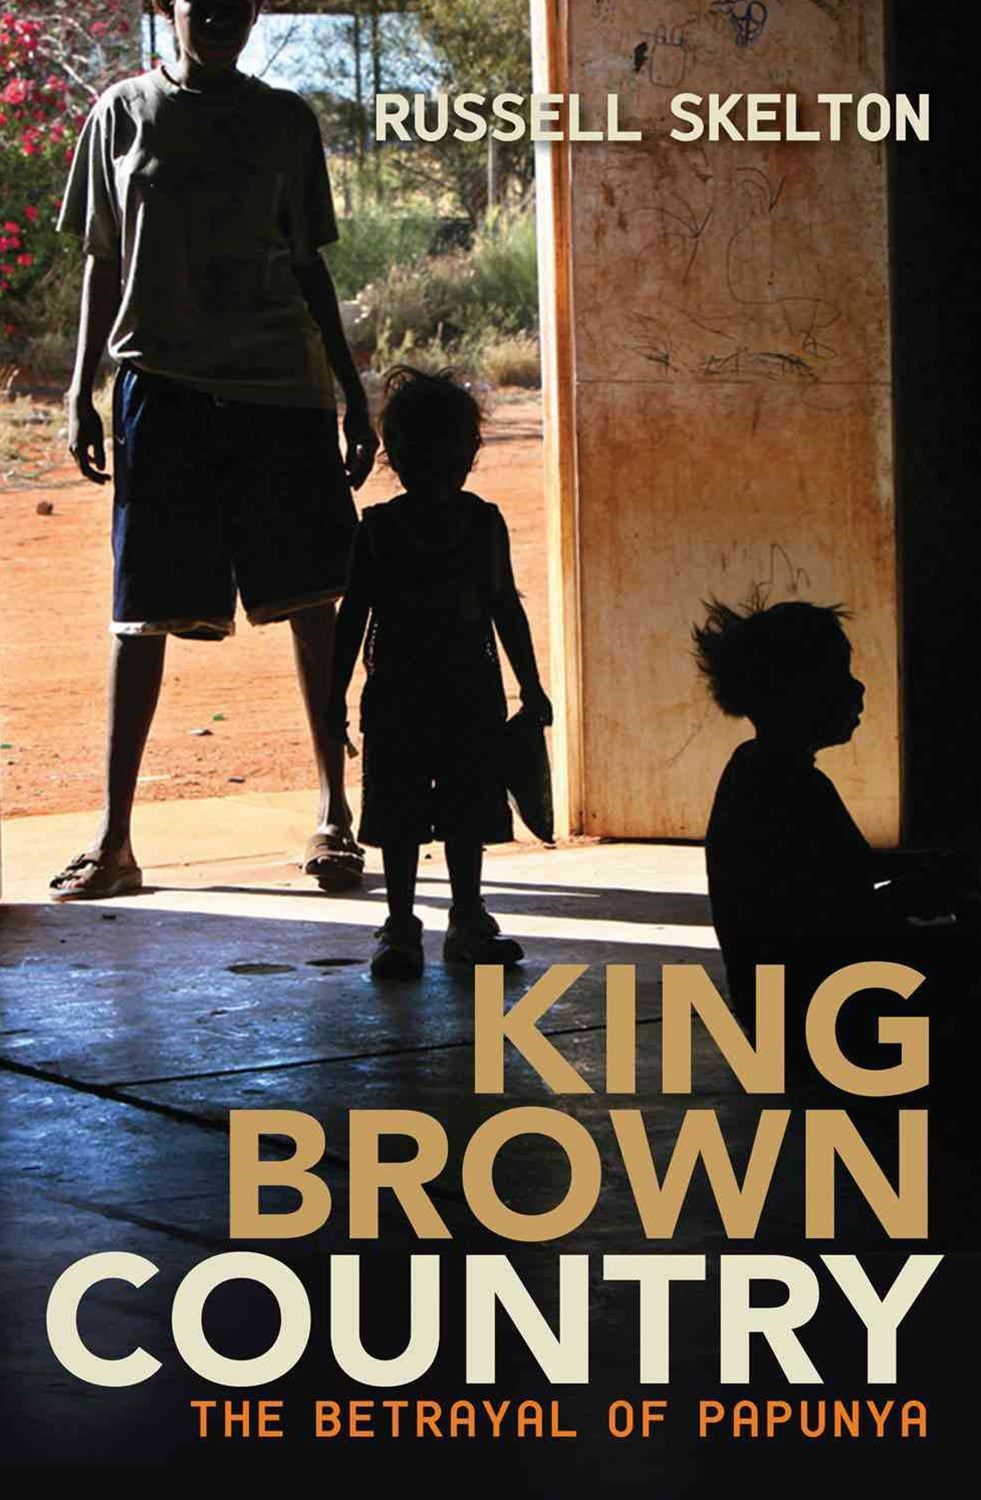 King Brown Country